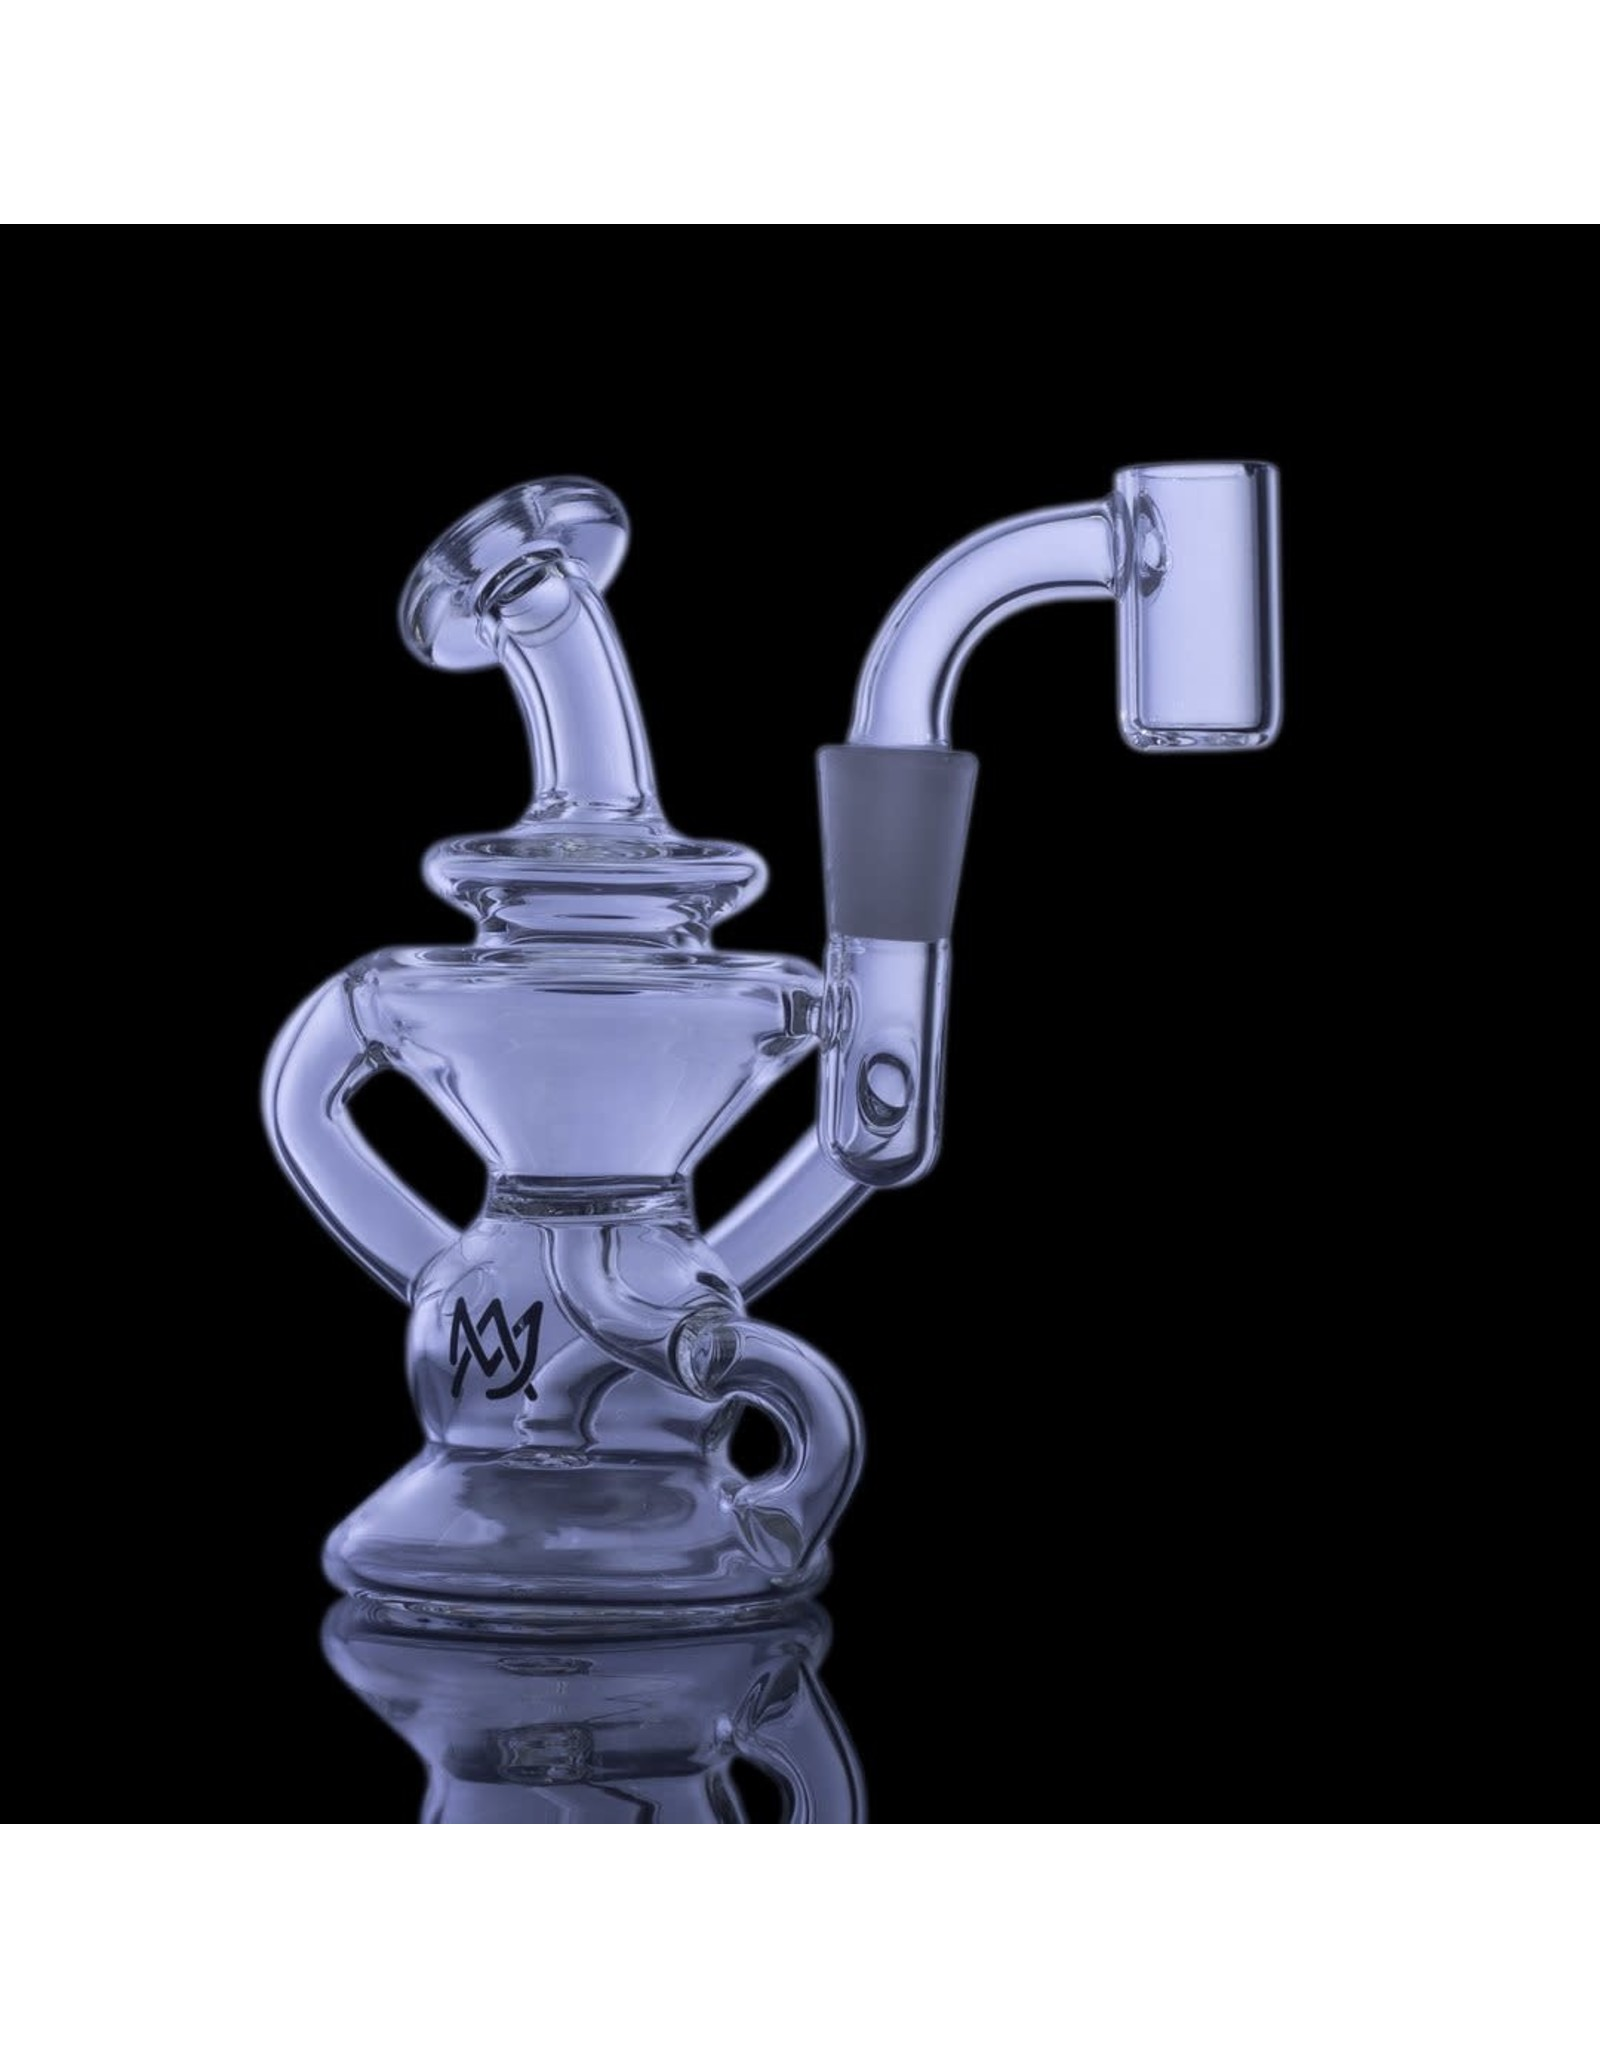 Mj Arsenal Mj Arsenal Hydra Klein Mini Rig